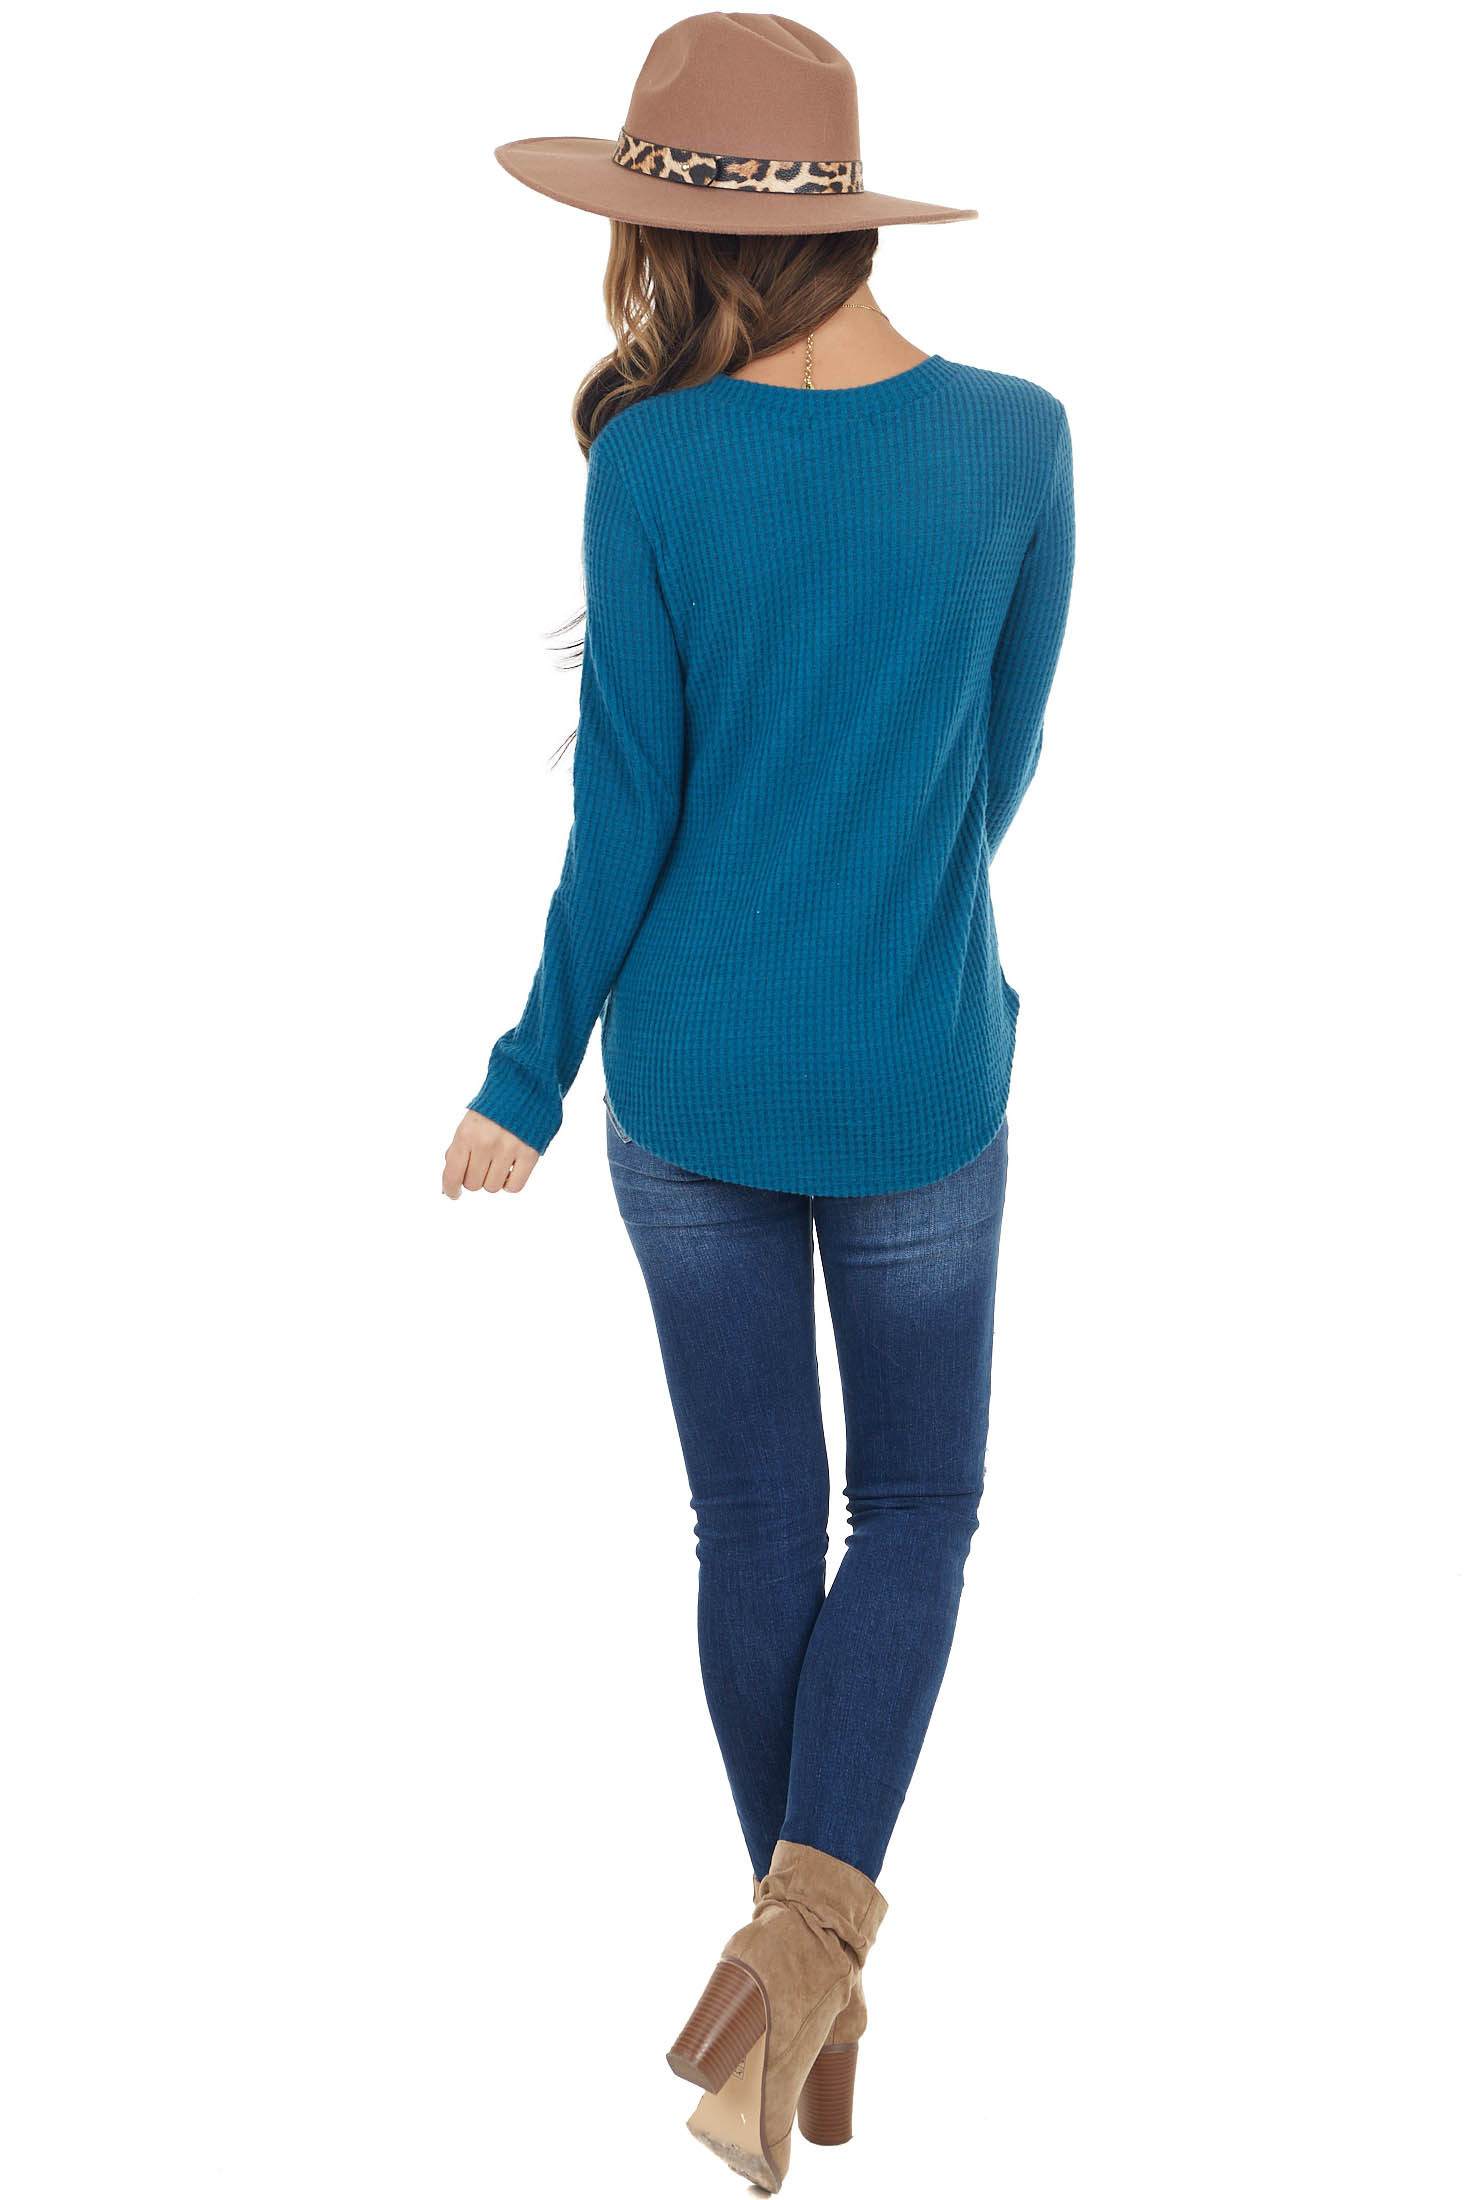 Dark Teal Waffle Knit Long Sleeve Top with Rounded Hemline